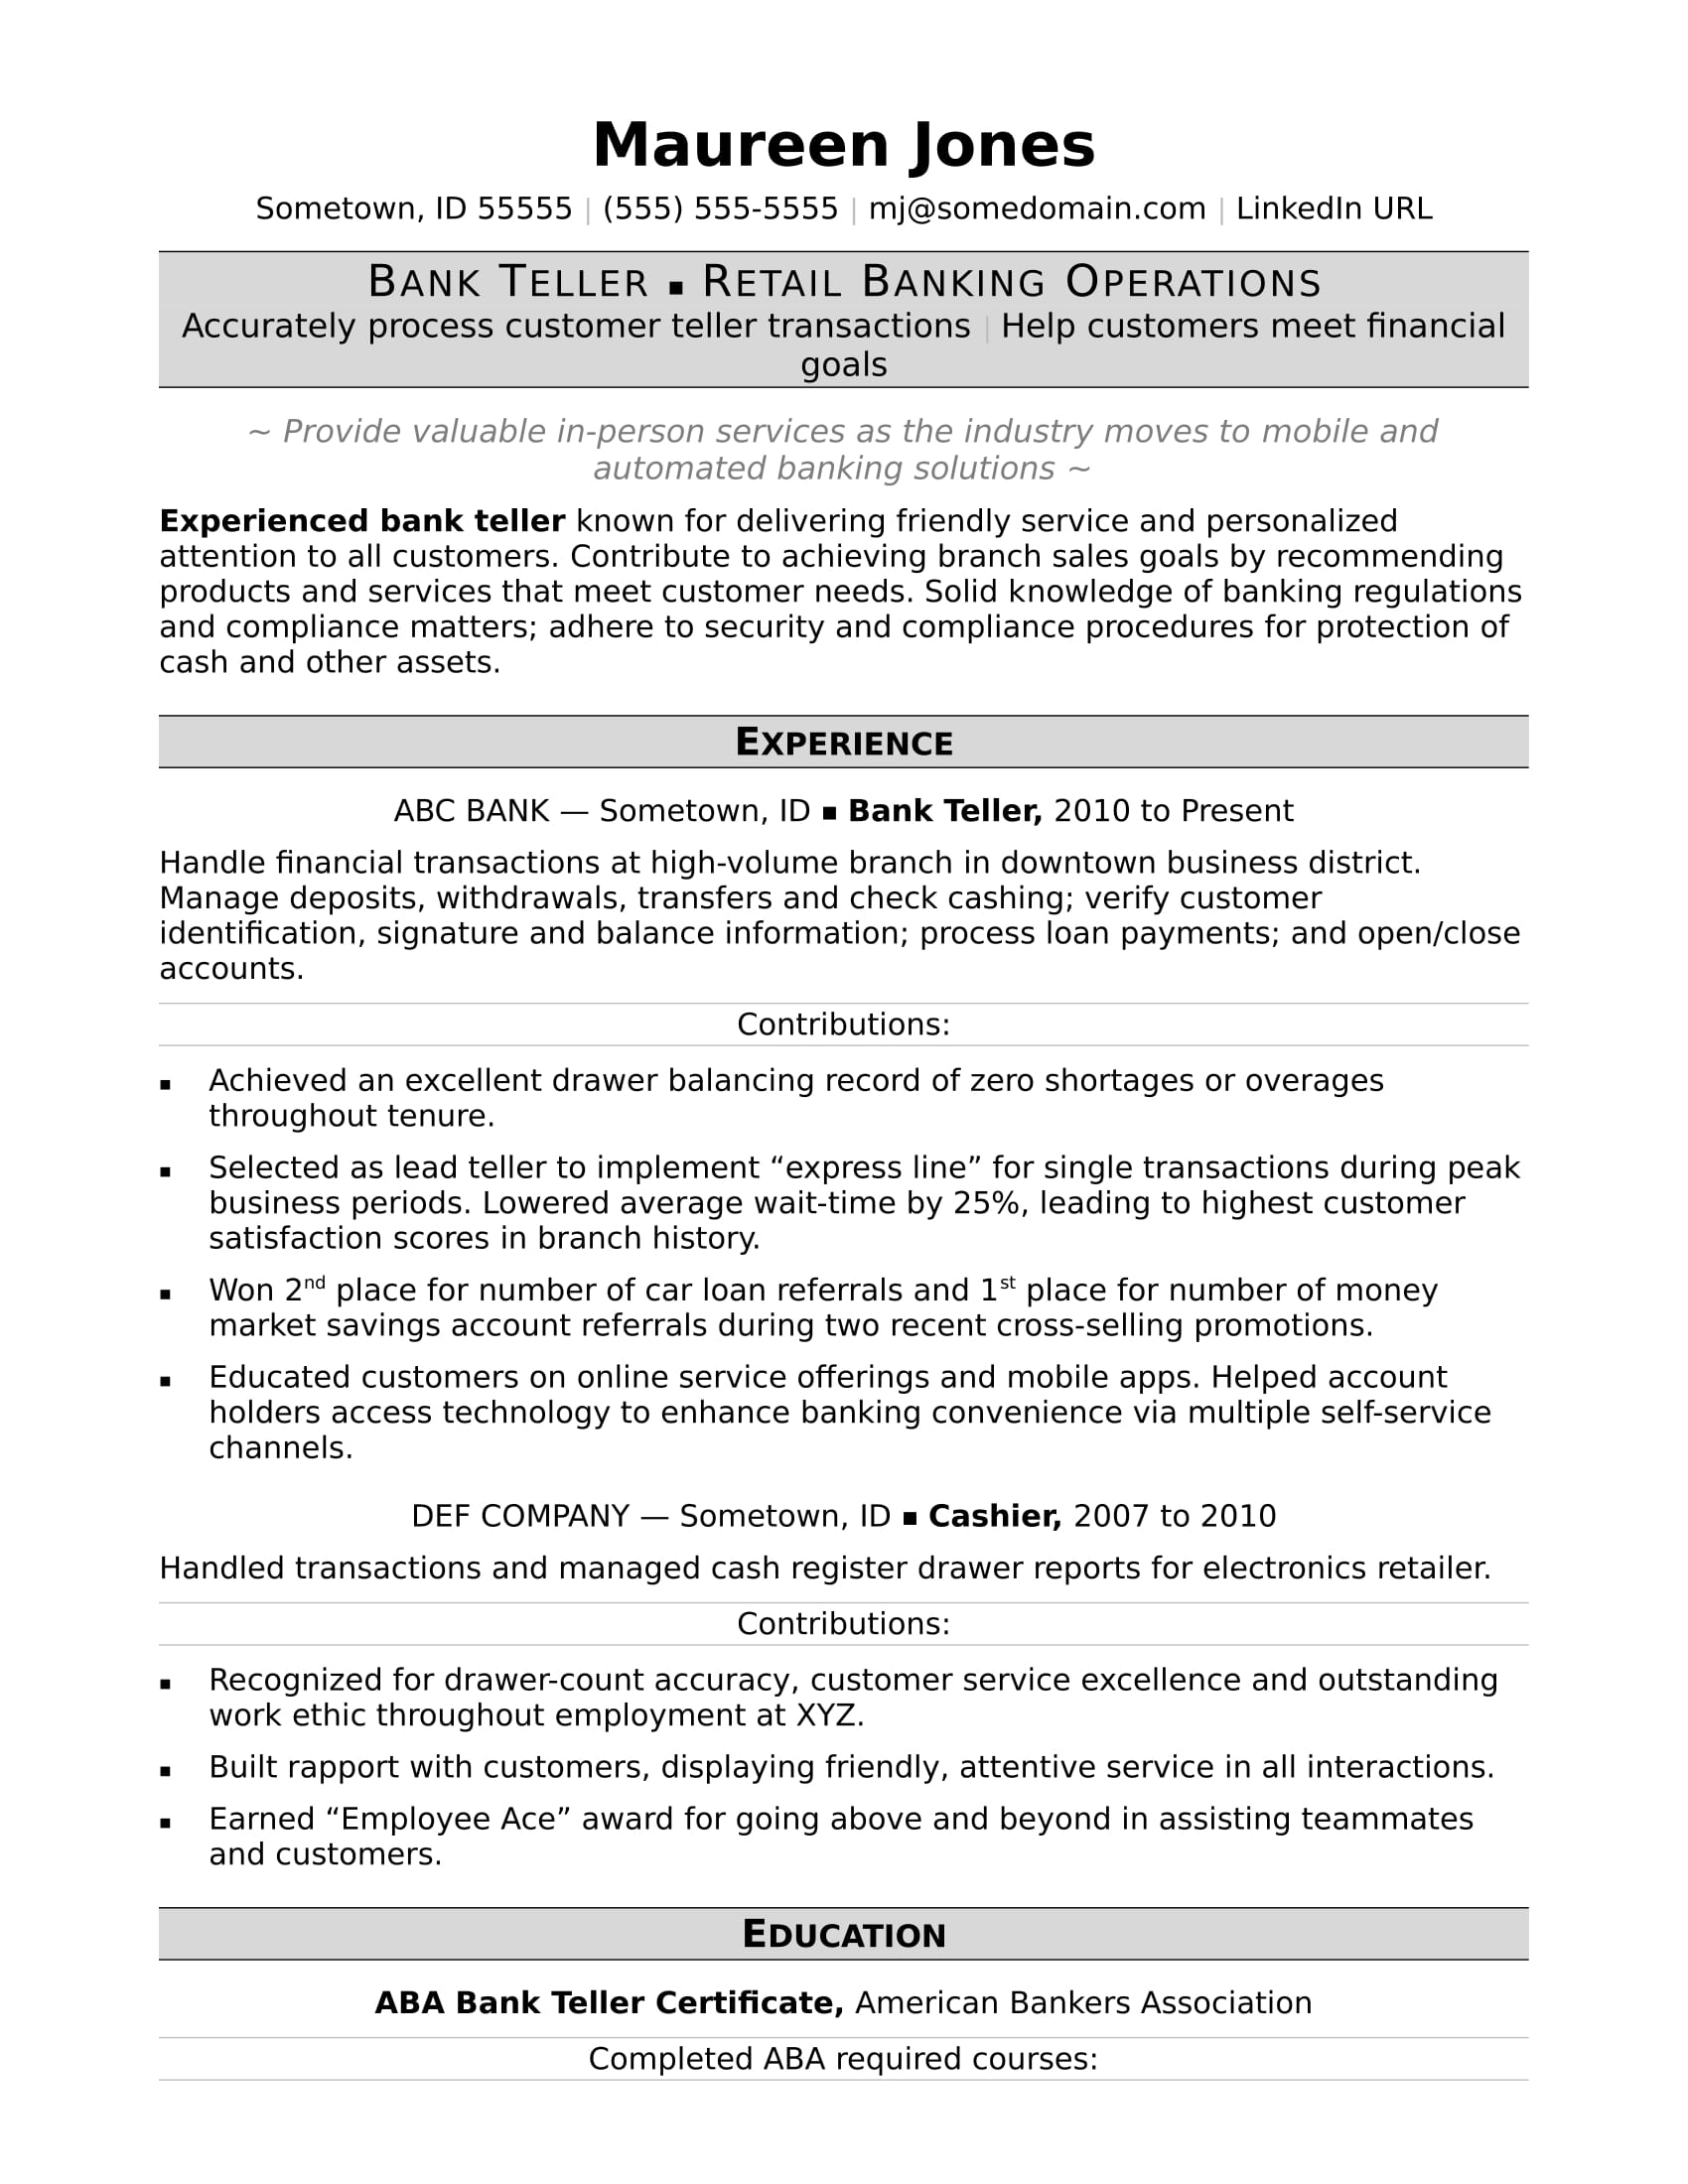 bank resume sample monster objective bankteller contemporary modern template professional Resume Teller Resume Objective